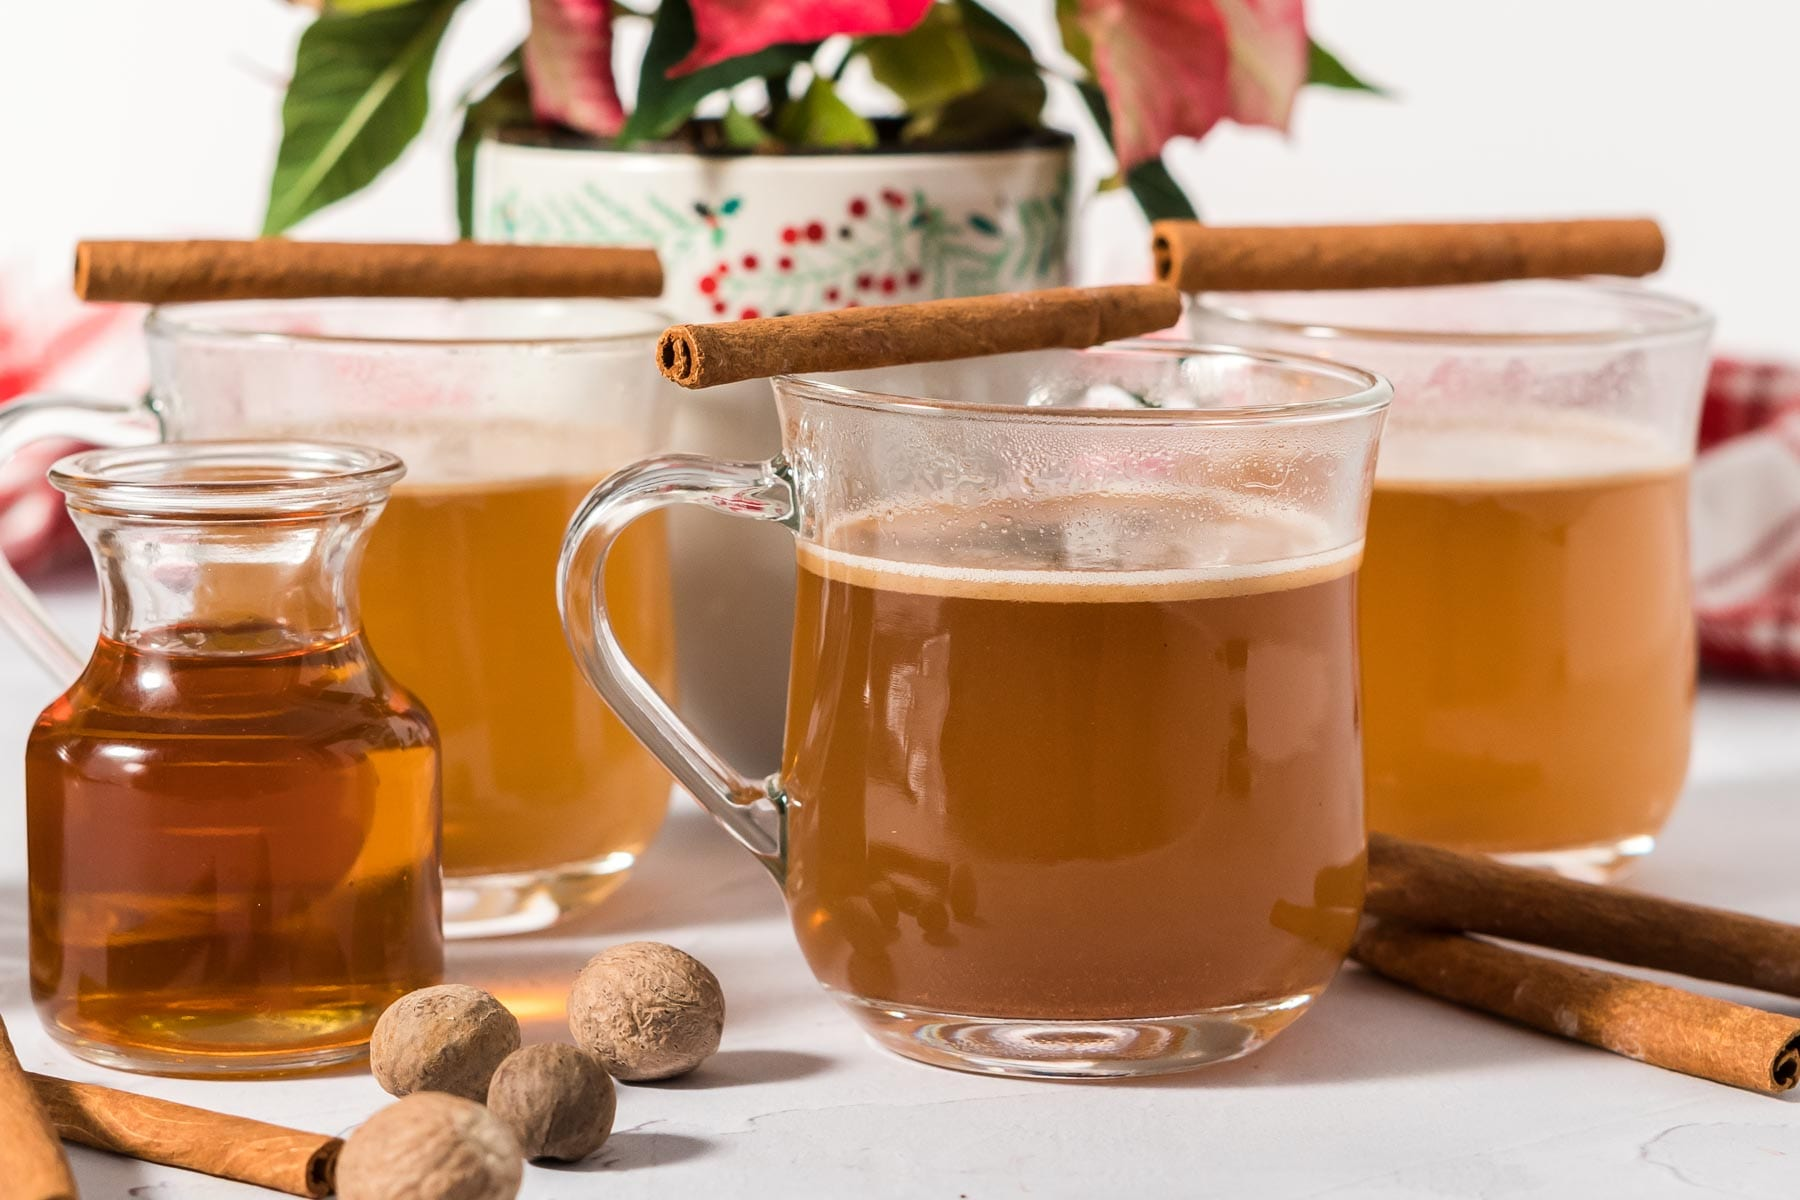 Hot buttered rum in mugs with a bottle of rum garnished with nutmeg and cinnamon.